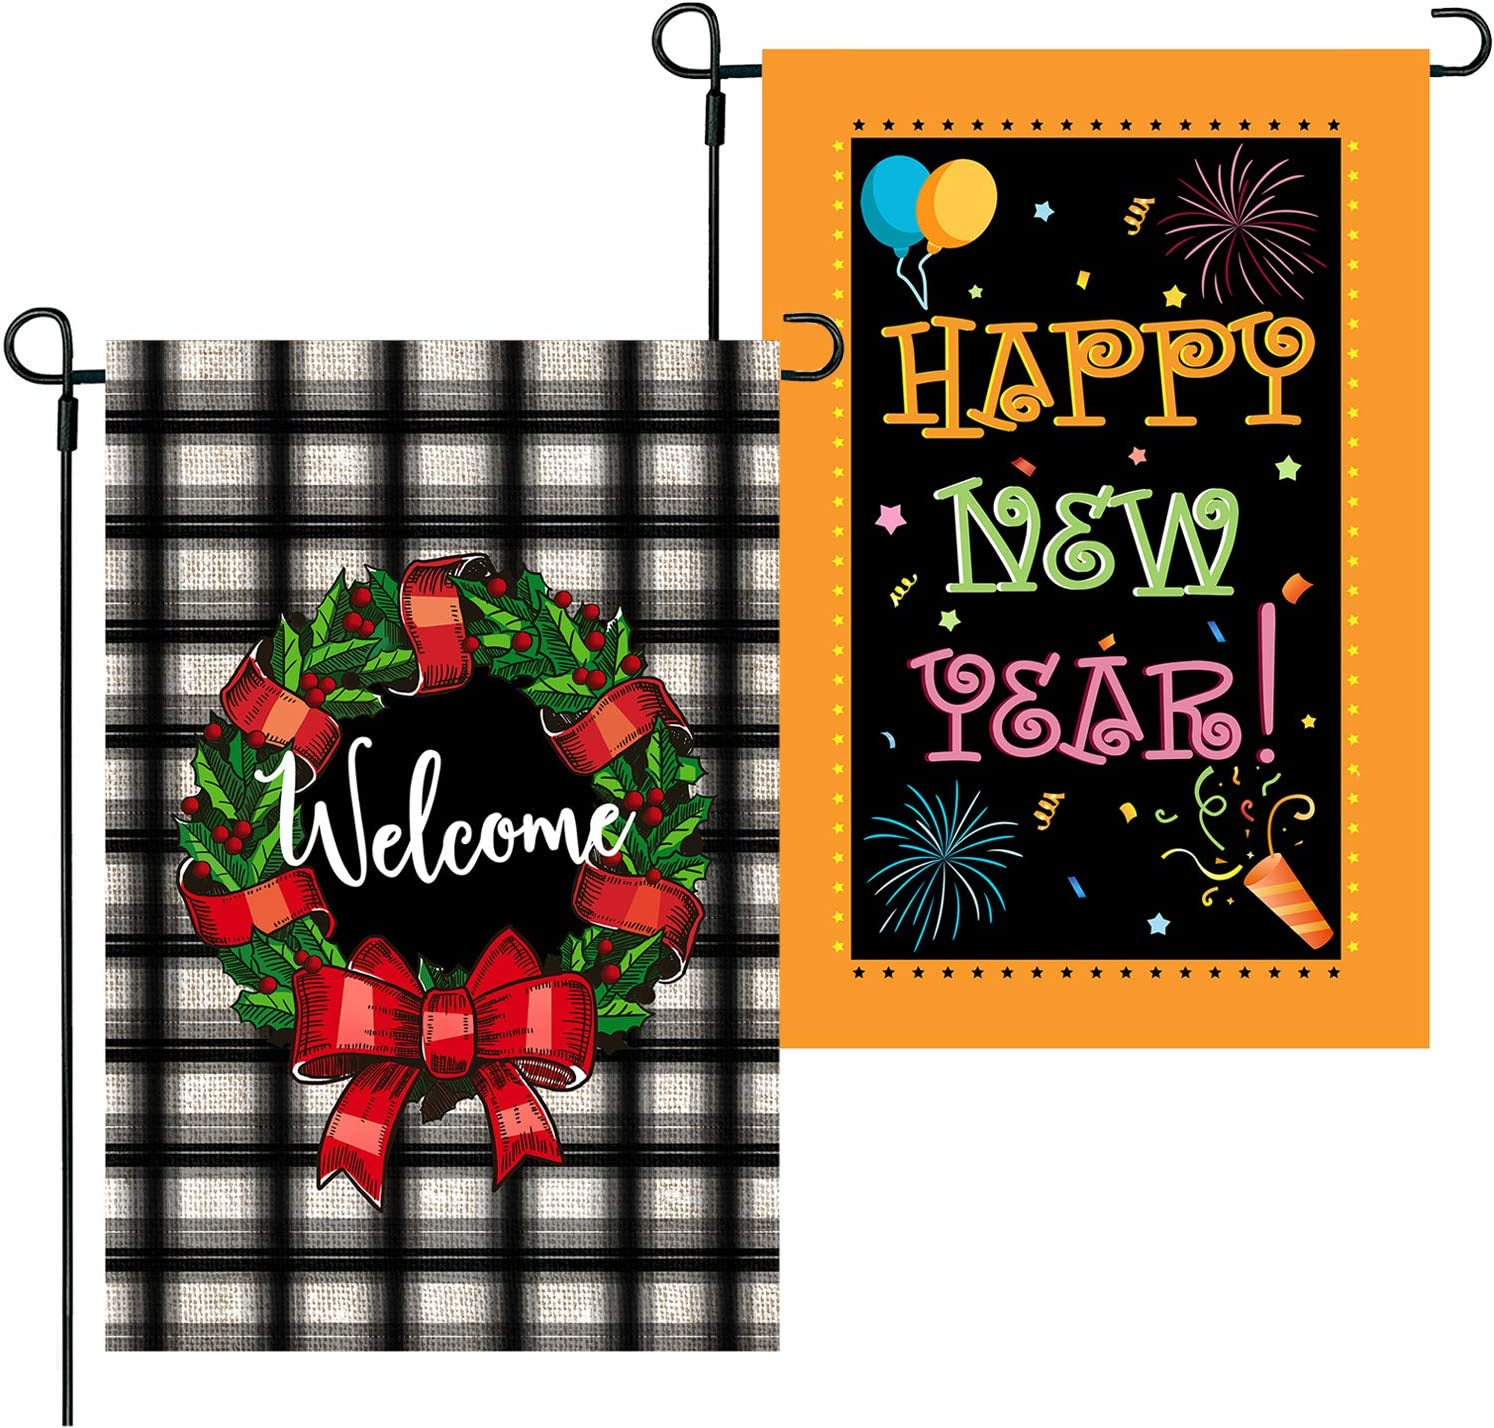 CAVLA 2Pcs Wreath Christmas Garden Flag Happy New Year Yard Flag 12 x 18 Inch Double Sided Buffalo Check Plaid Rustic Flag Christmas Winter New Year Holiday Farmhouse Yard Outdoor Decoration